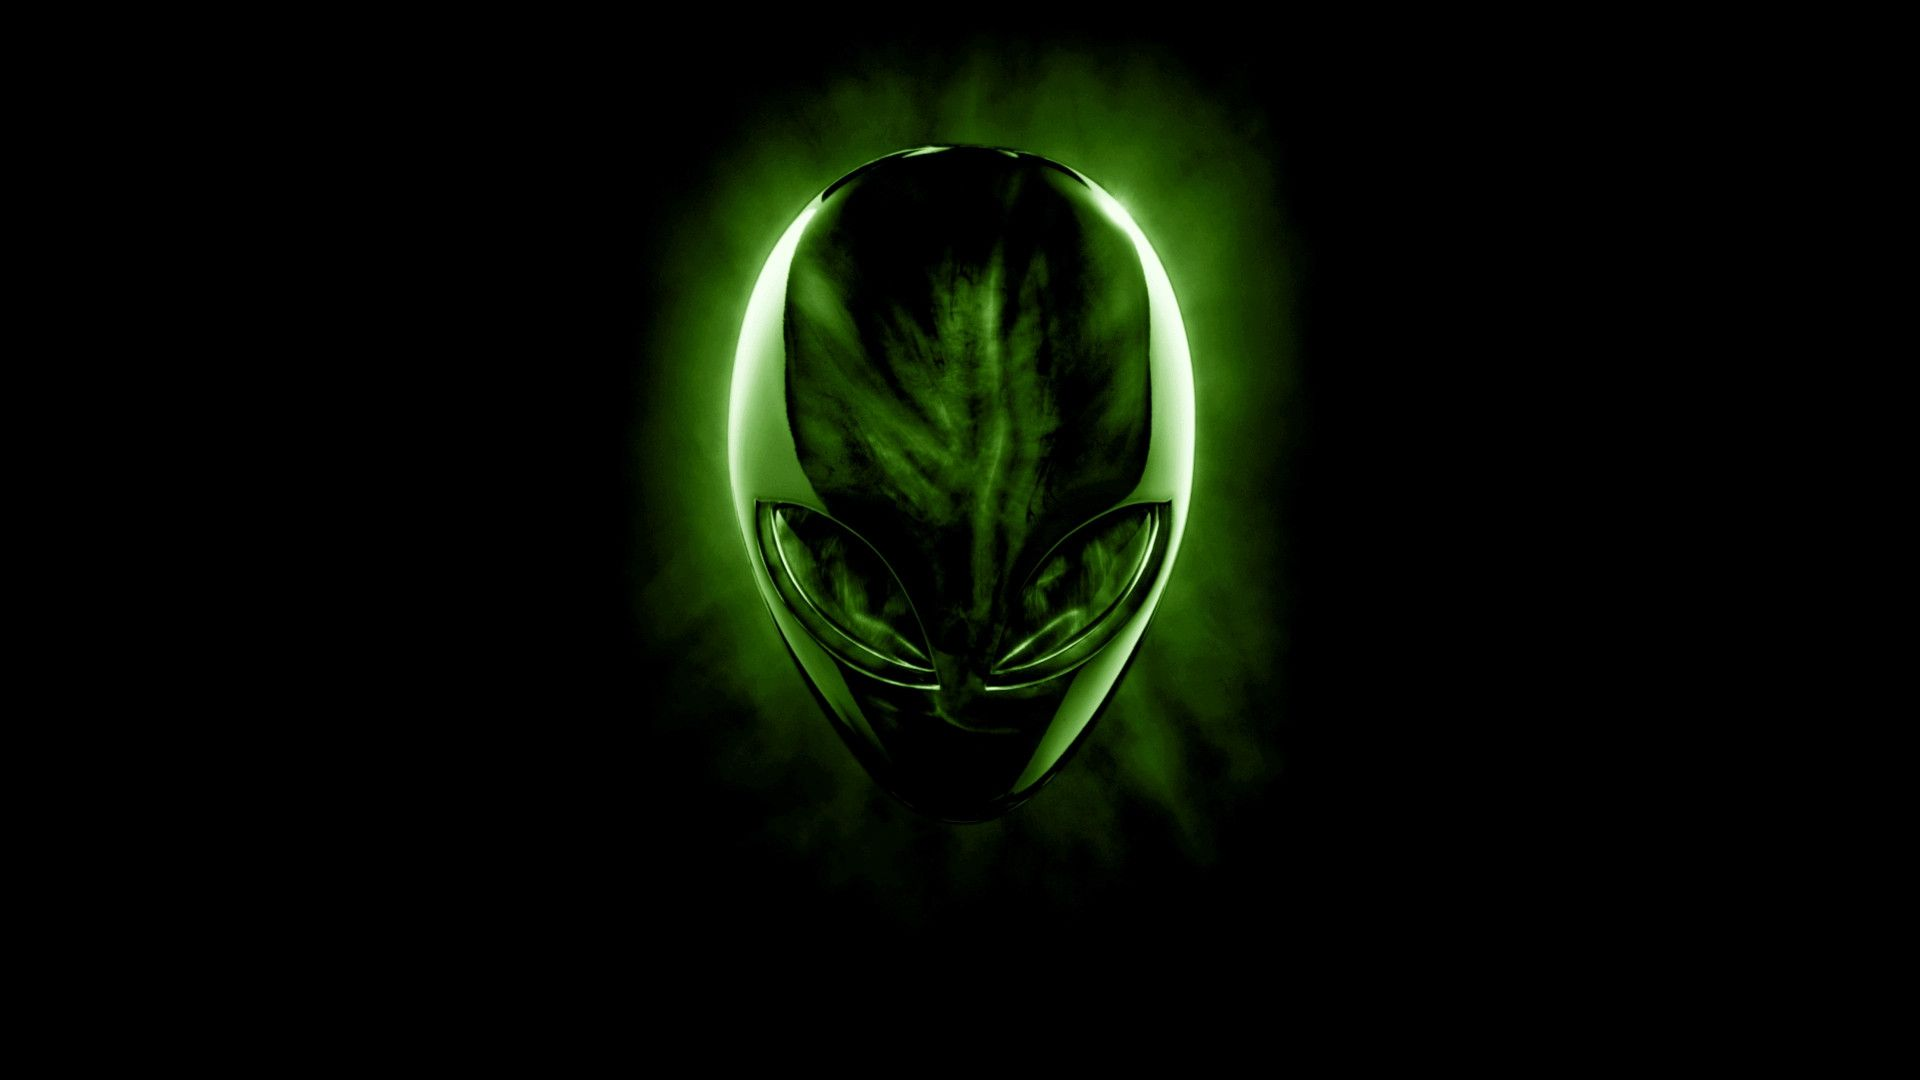 Green Alienware Wallpapers 1920x1080